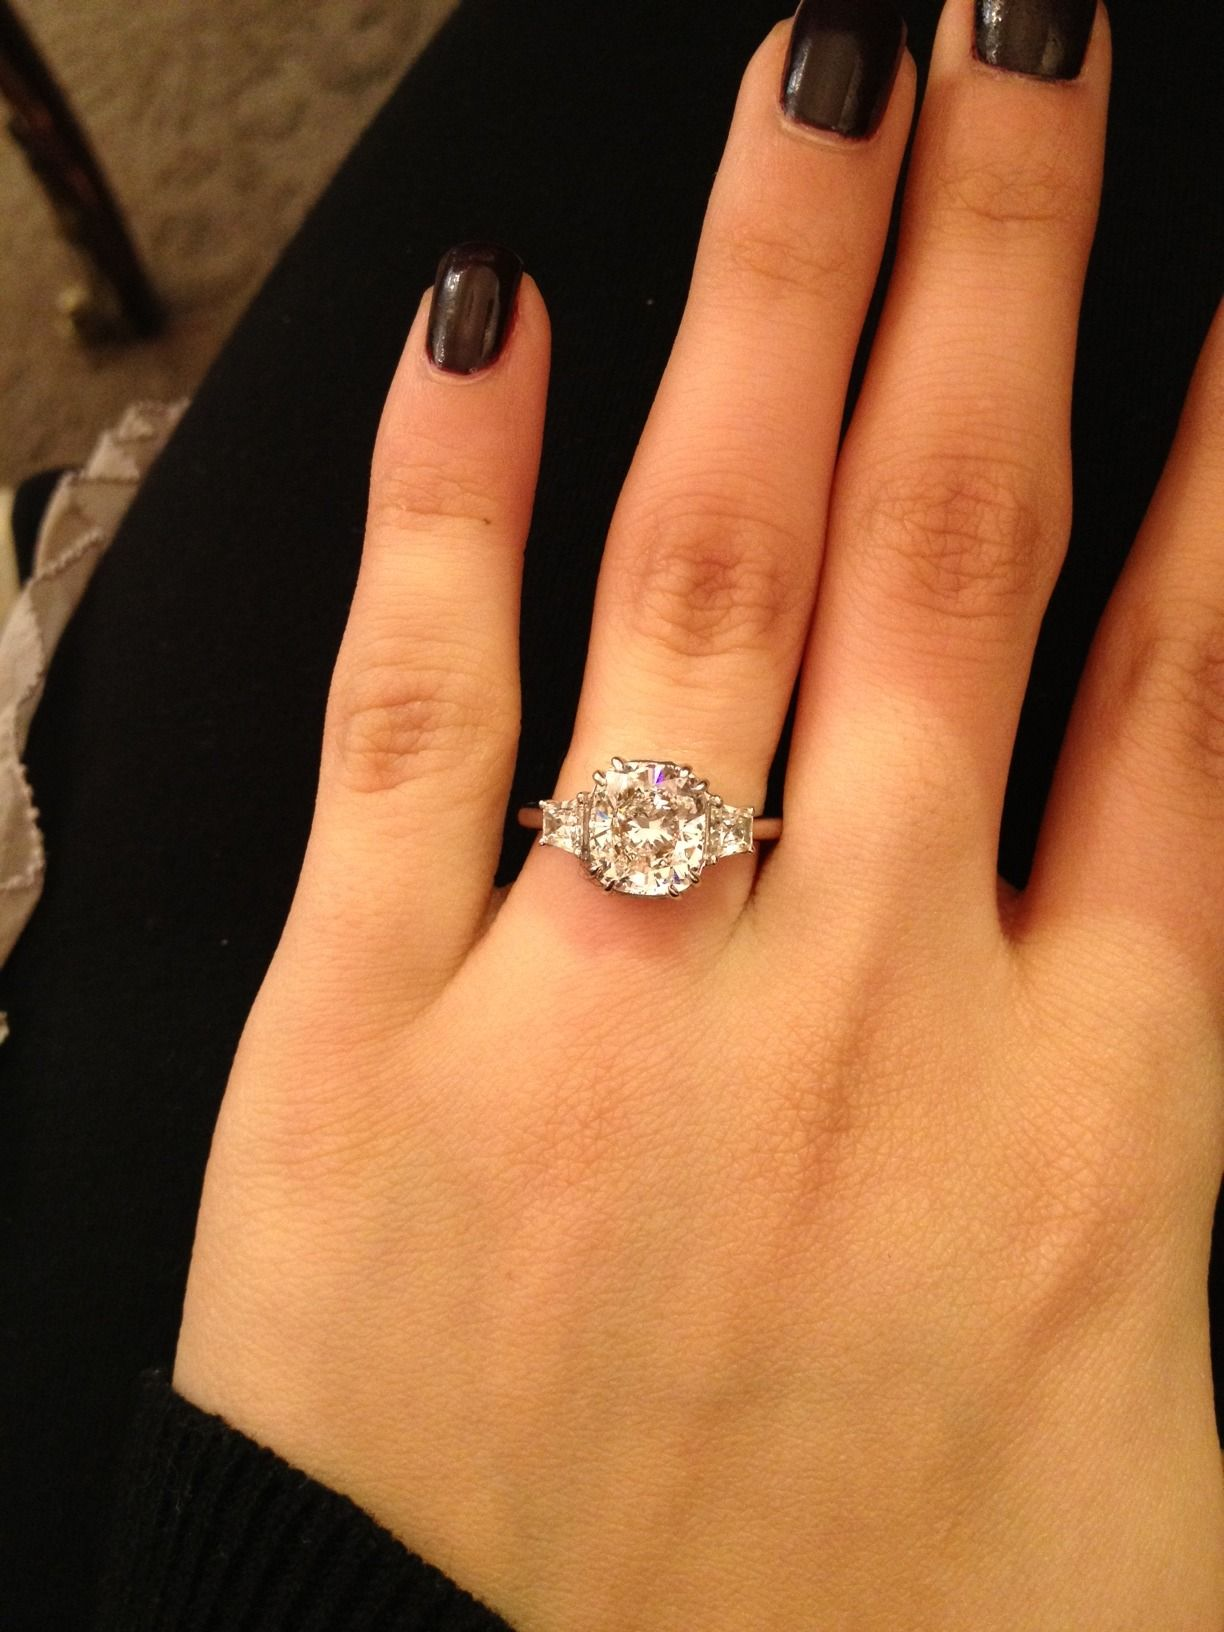 3 Carat, 3 Stone Diamond Engagement Ring! So Sparkly!